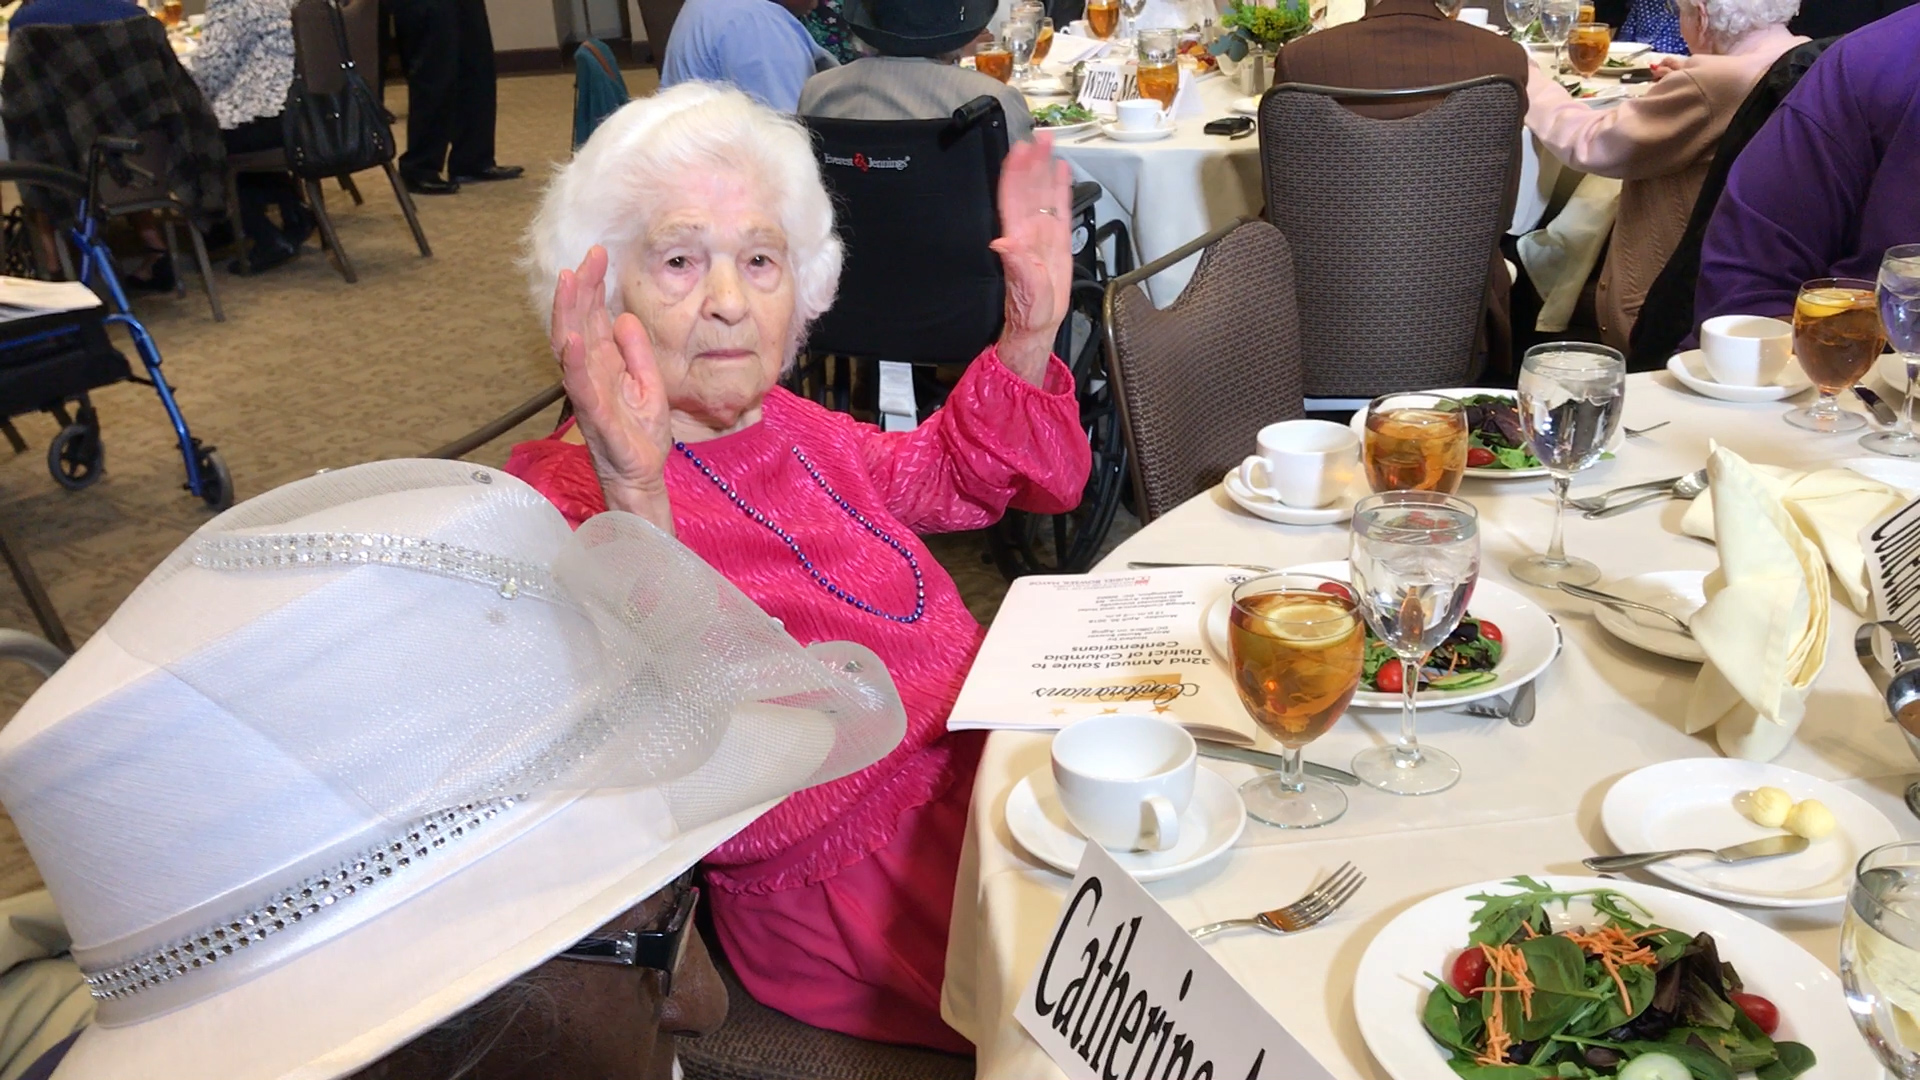 D.C's oldest and wisest citizens were treated to lunch in celebration of their longevity. (Caroline Patrickis/ABC7)